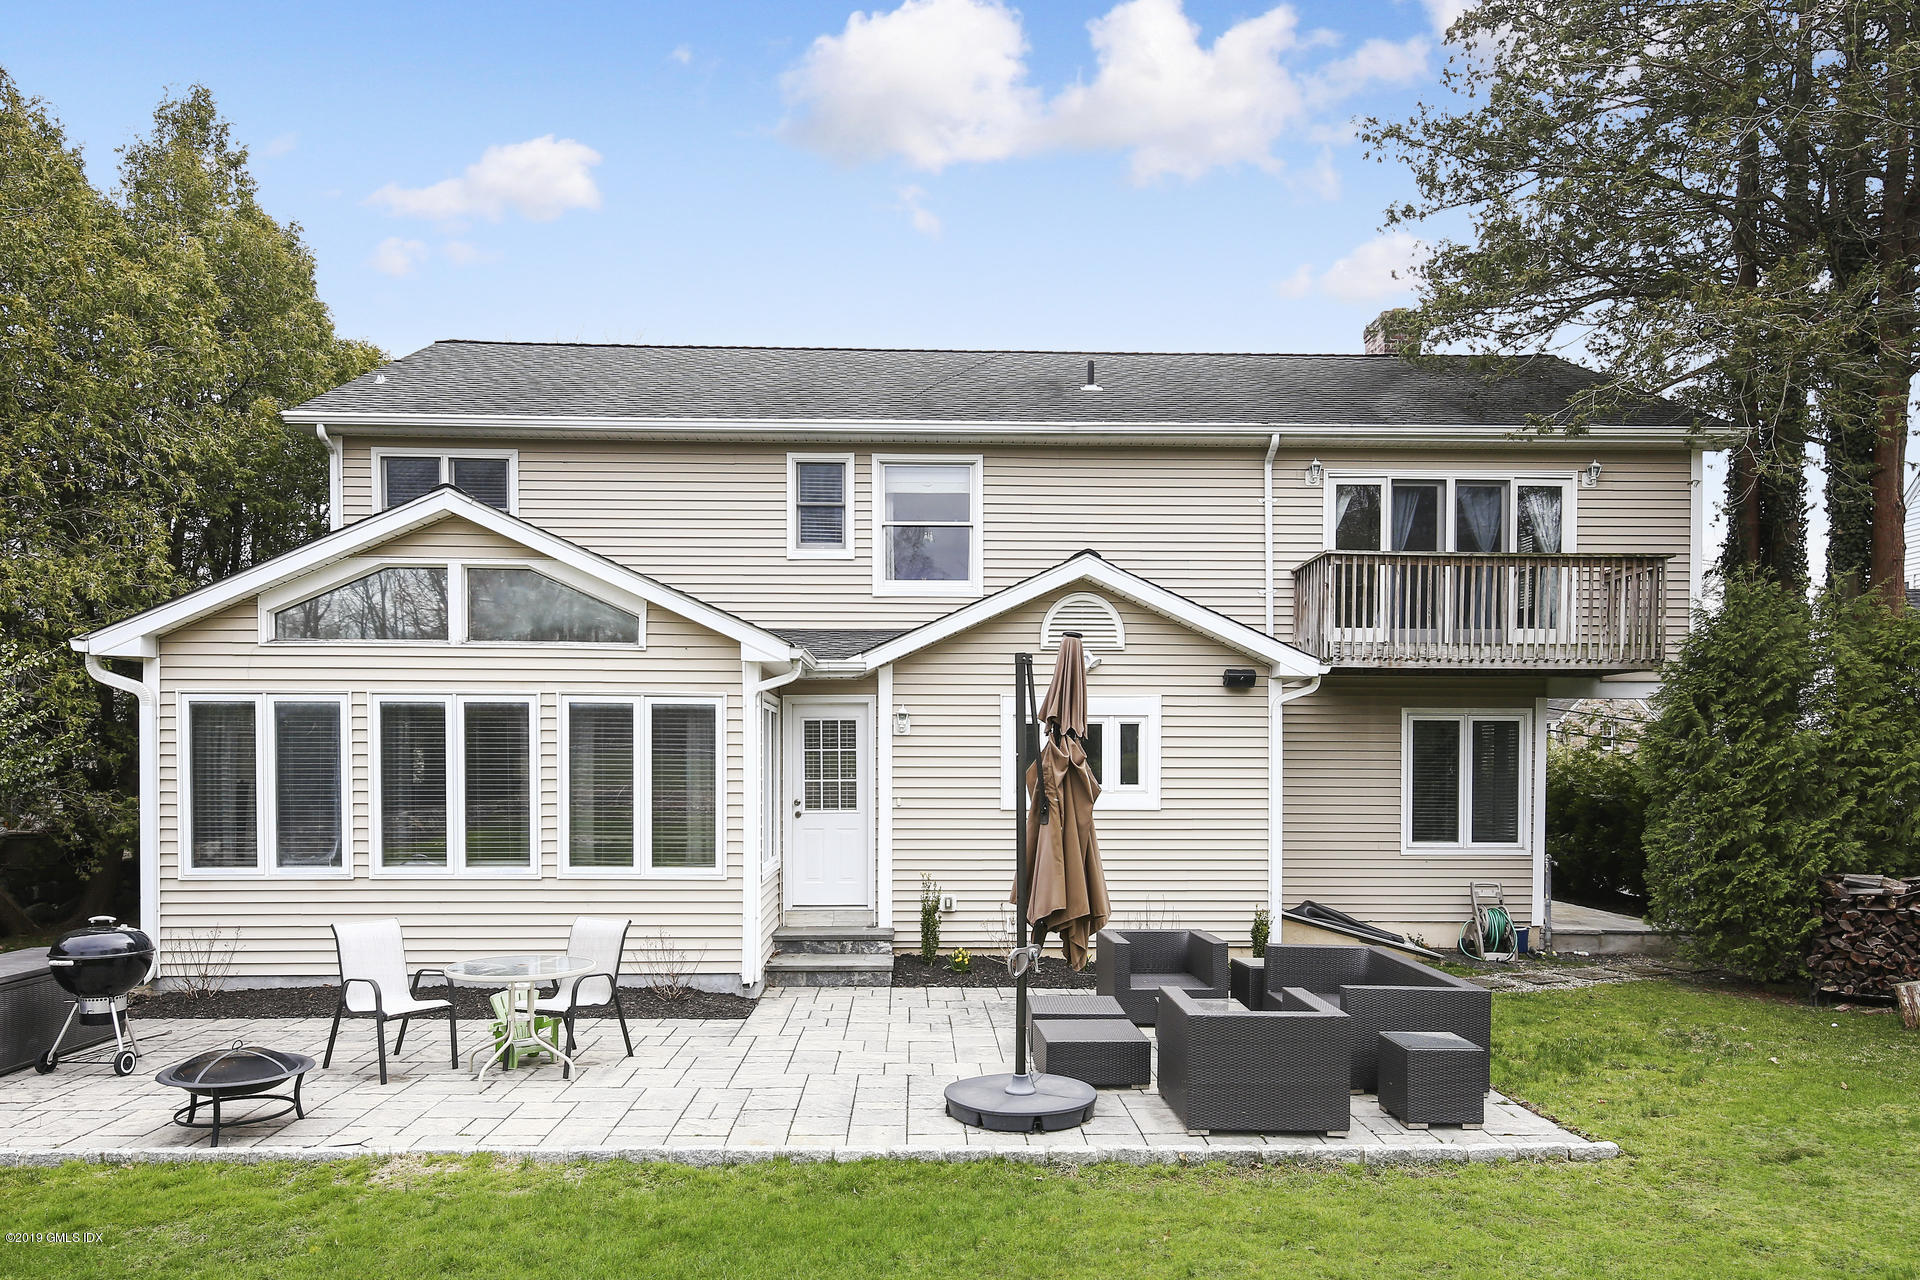 22 Indian Field Road,Greenwich,Connecticut 06830,5 Bedrooms Bedrooms,4 BathroomsBathrooms,Single family,Indian Field,106177